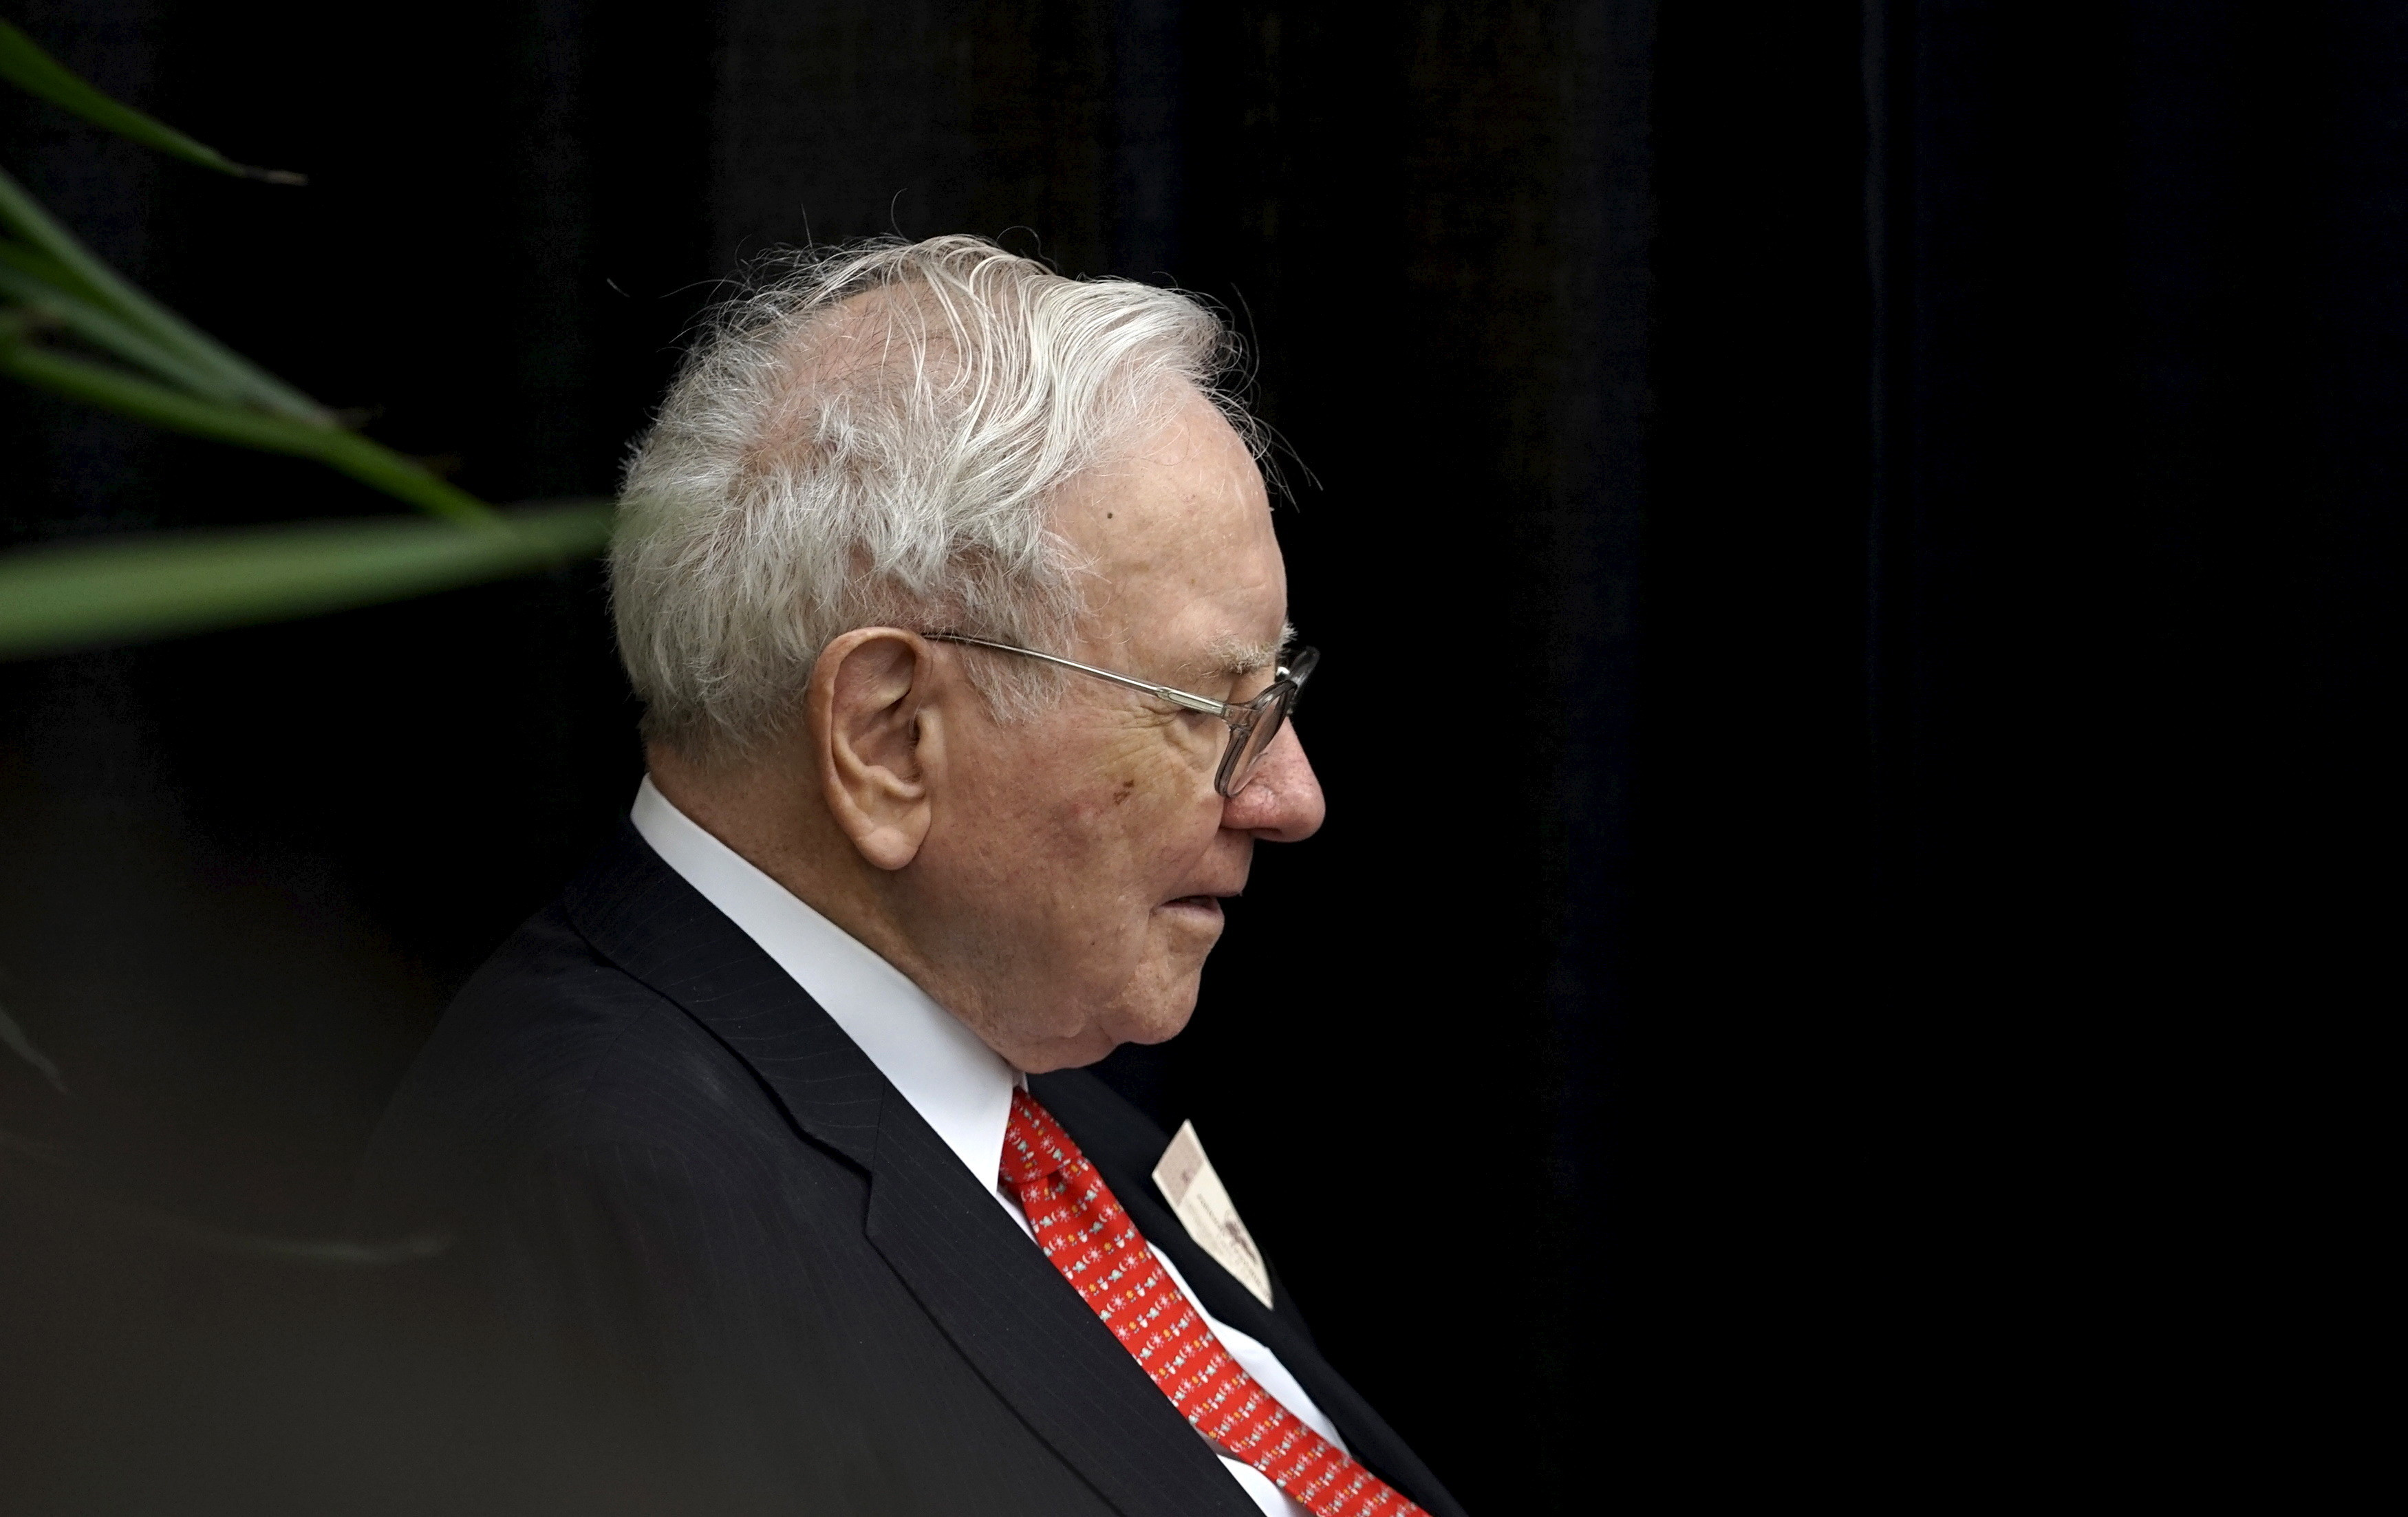 Berkshire Hathaway CEO Warren Buffett plays bridge during the Berkshire annual meeting weekend in Omaha, Nebraska May 3, 2015. More than 40,000 Berkshire Hathaway shareholders poured into Omaha this weekend to celebrate Buffett's 50th anniversary running the company, at what the world's third-richest person calls Woodstock for Capitalists. REUTERS/Rick Wilking - GF10000082921